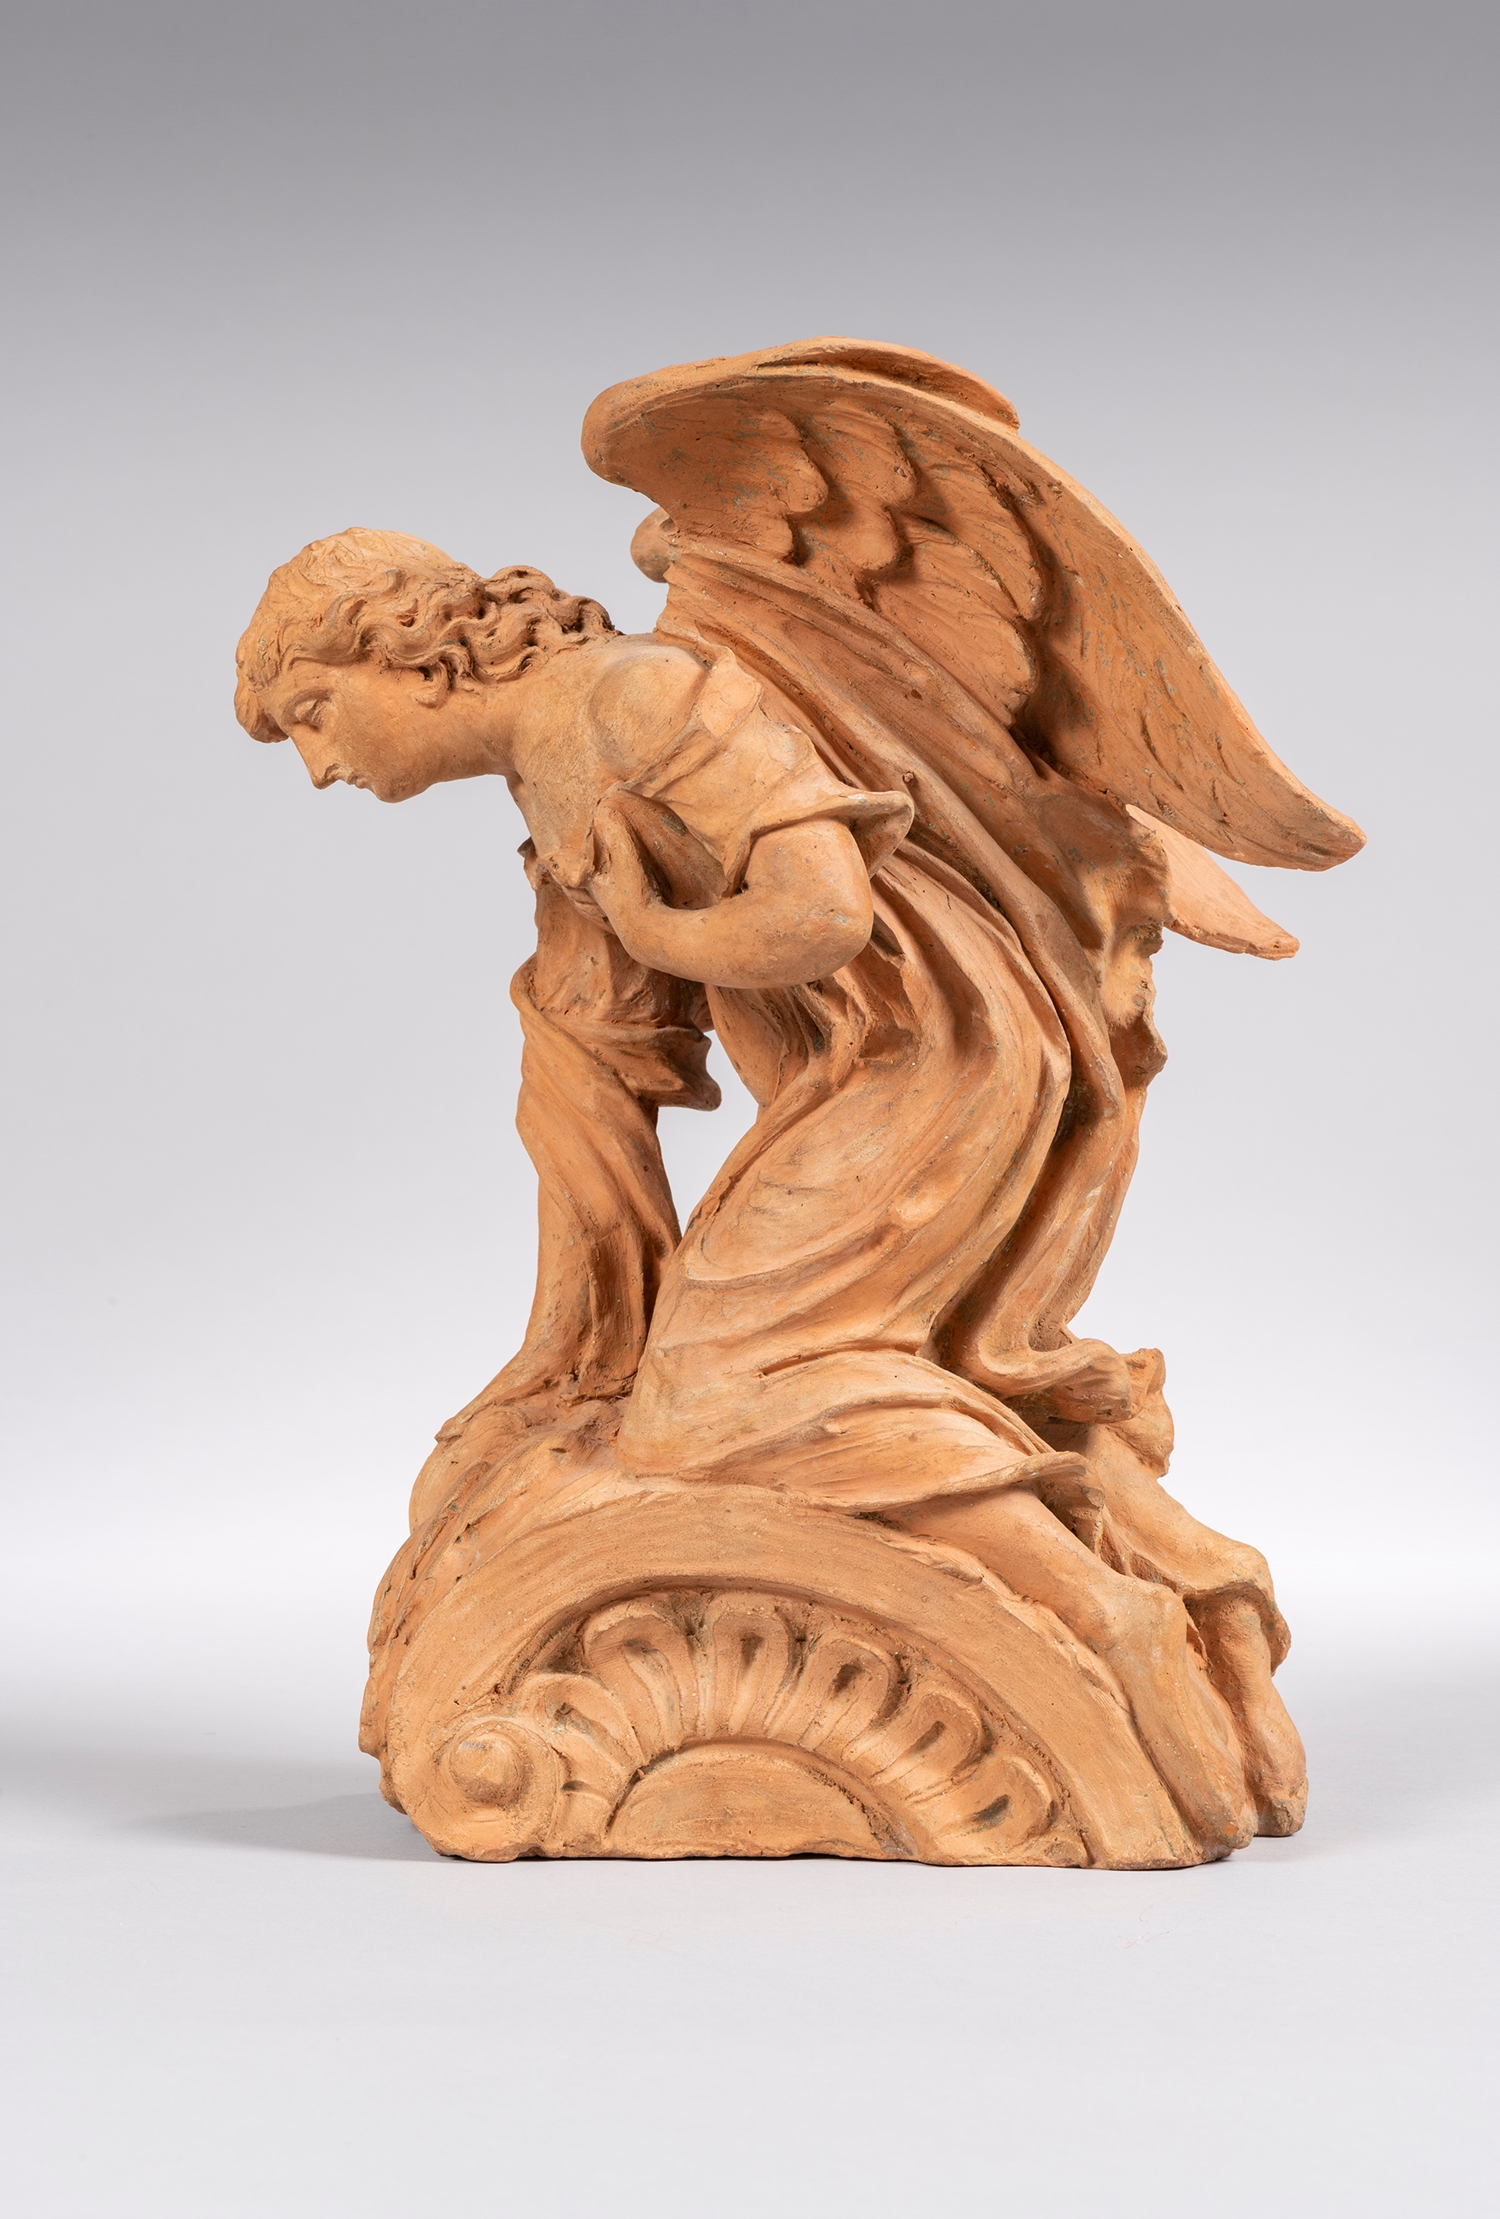 PROJECT FOR THE CORONATION OF AN ALTARPIECE OR A PORTAL : KNEELING ANGEL FLANDERS  17 TH CENTURY - SOLD